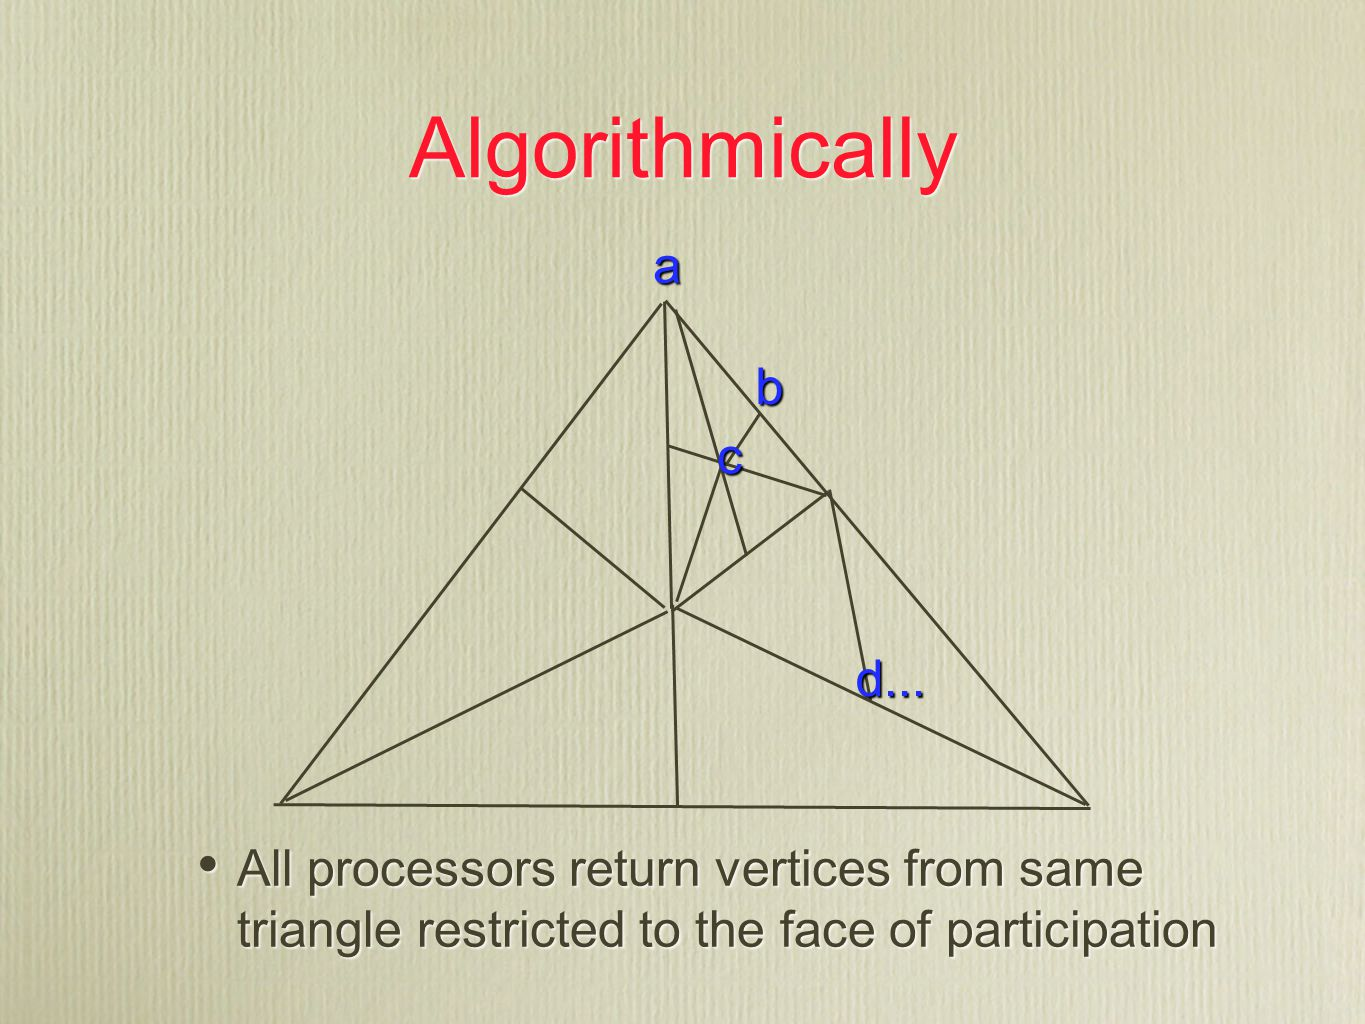 Algorithmically All processors return vertices from same triangle restricted to the face of participation a b c d...